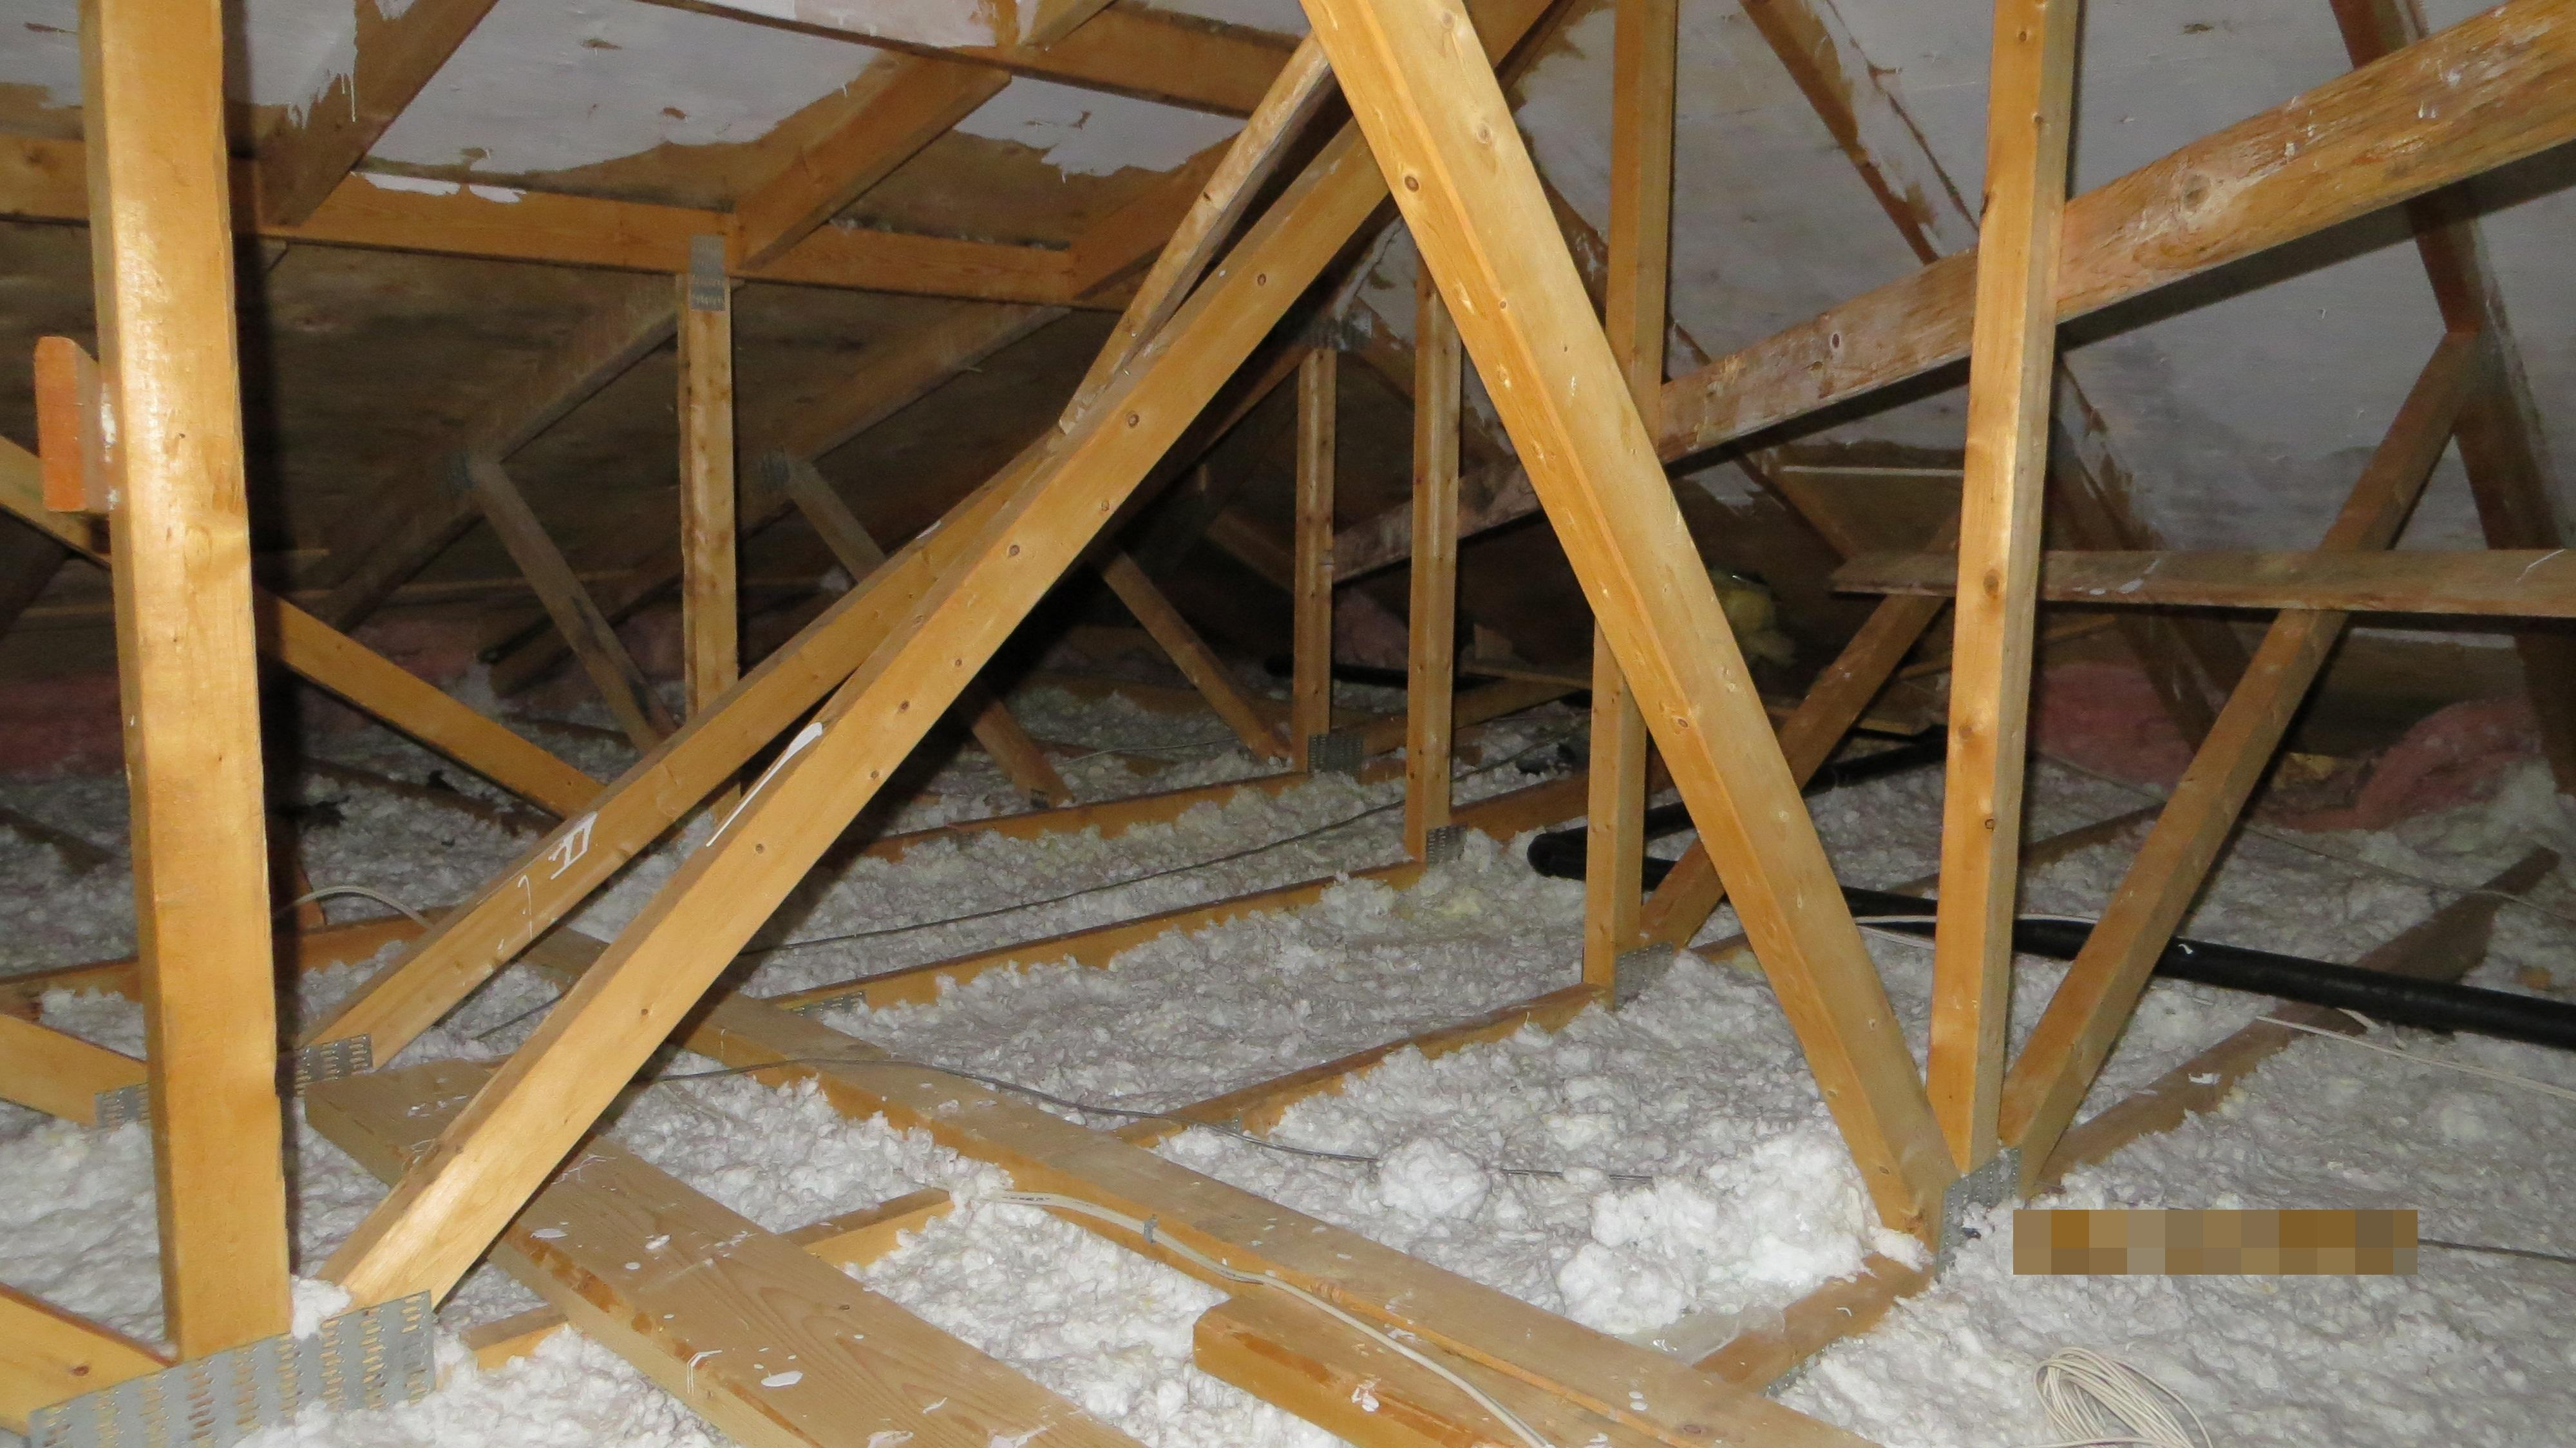 Very low graded insulation in Attic